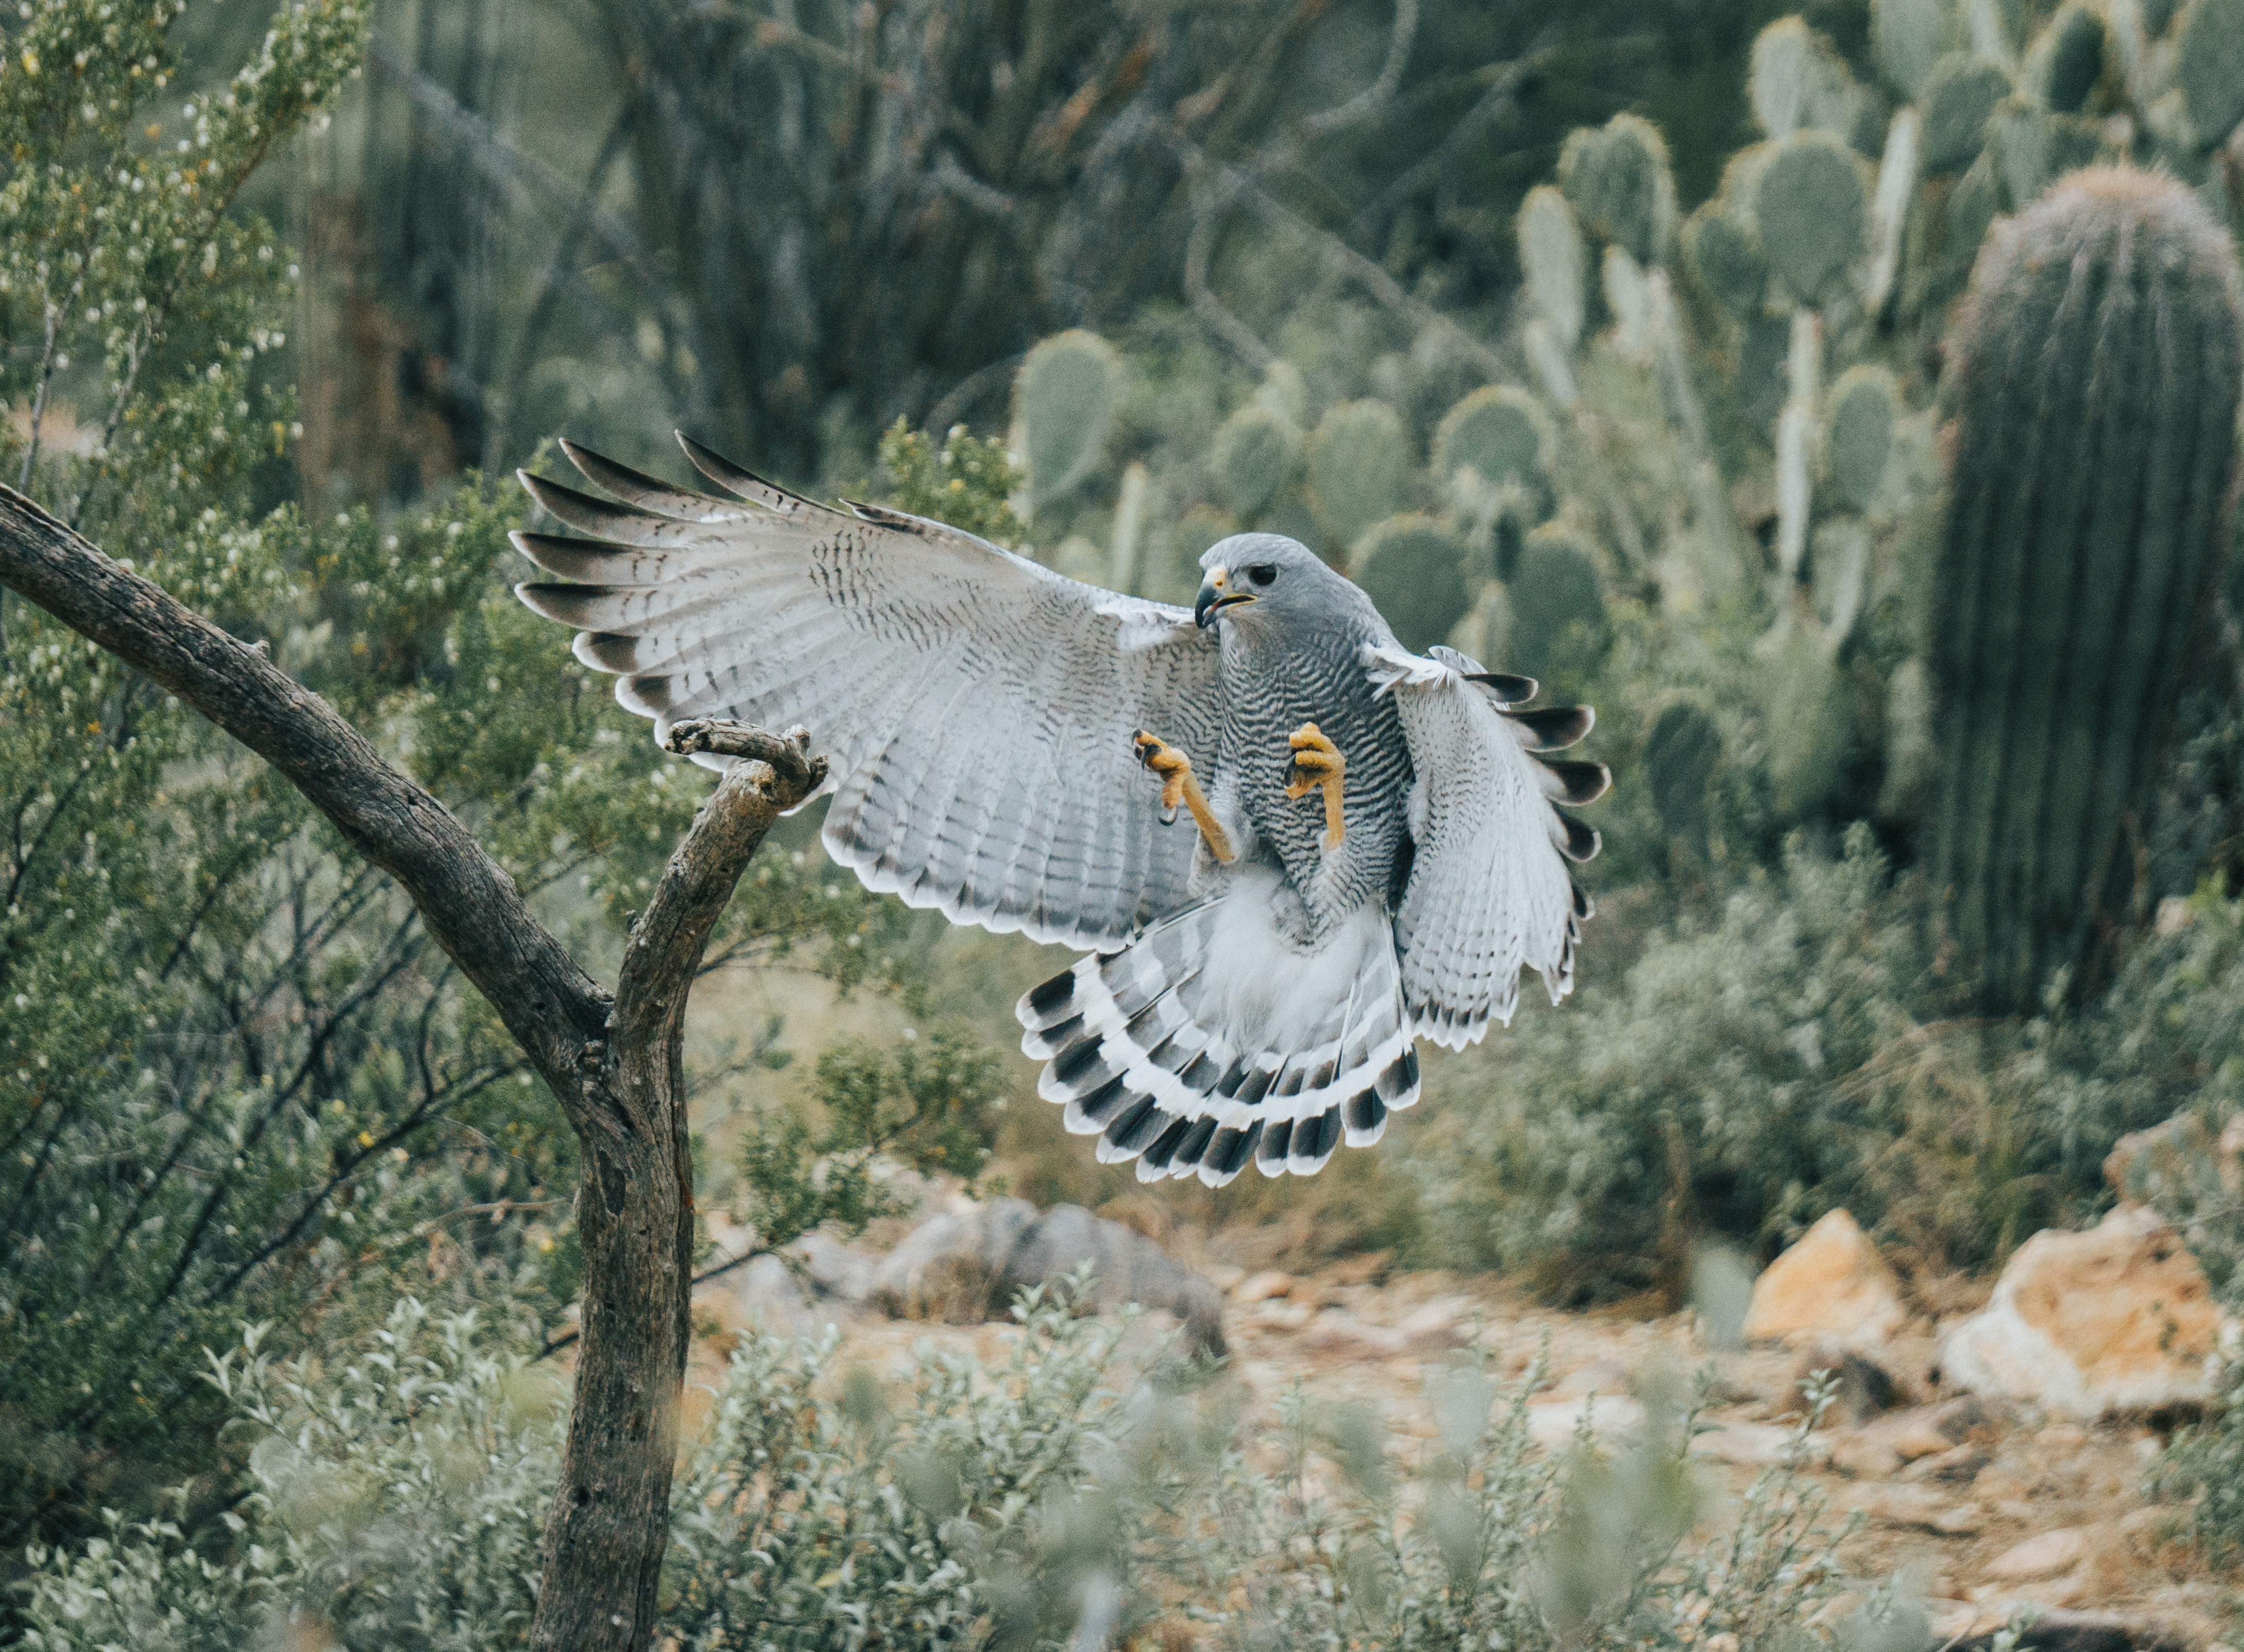 black and white bird flying near green cactus plants